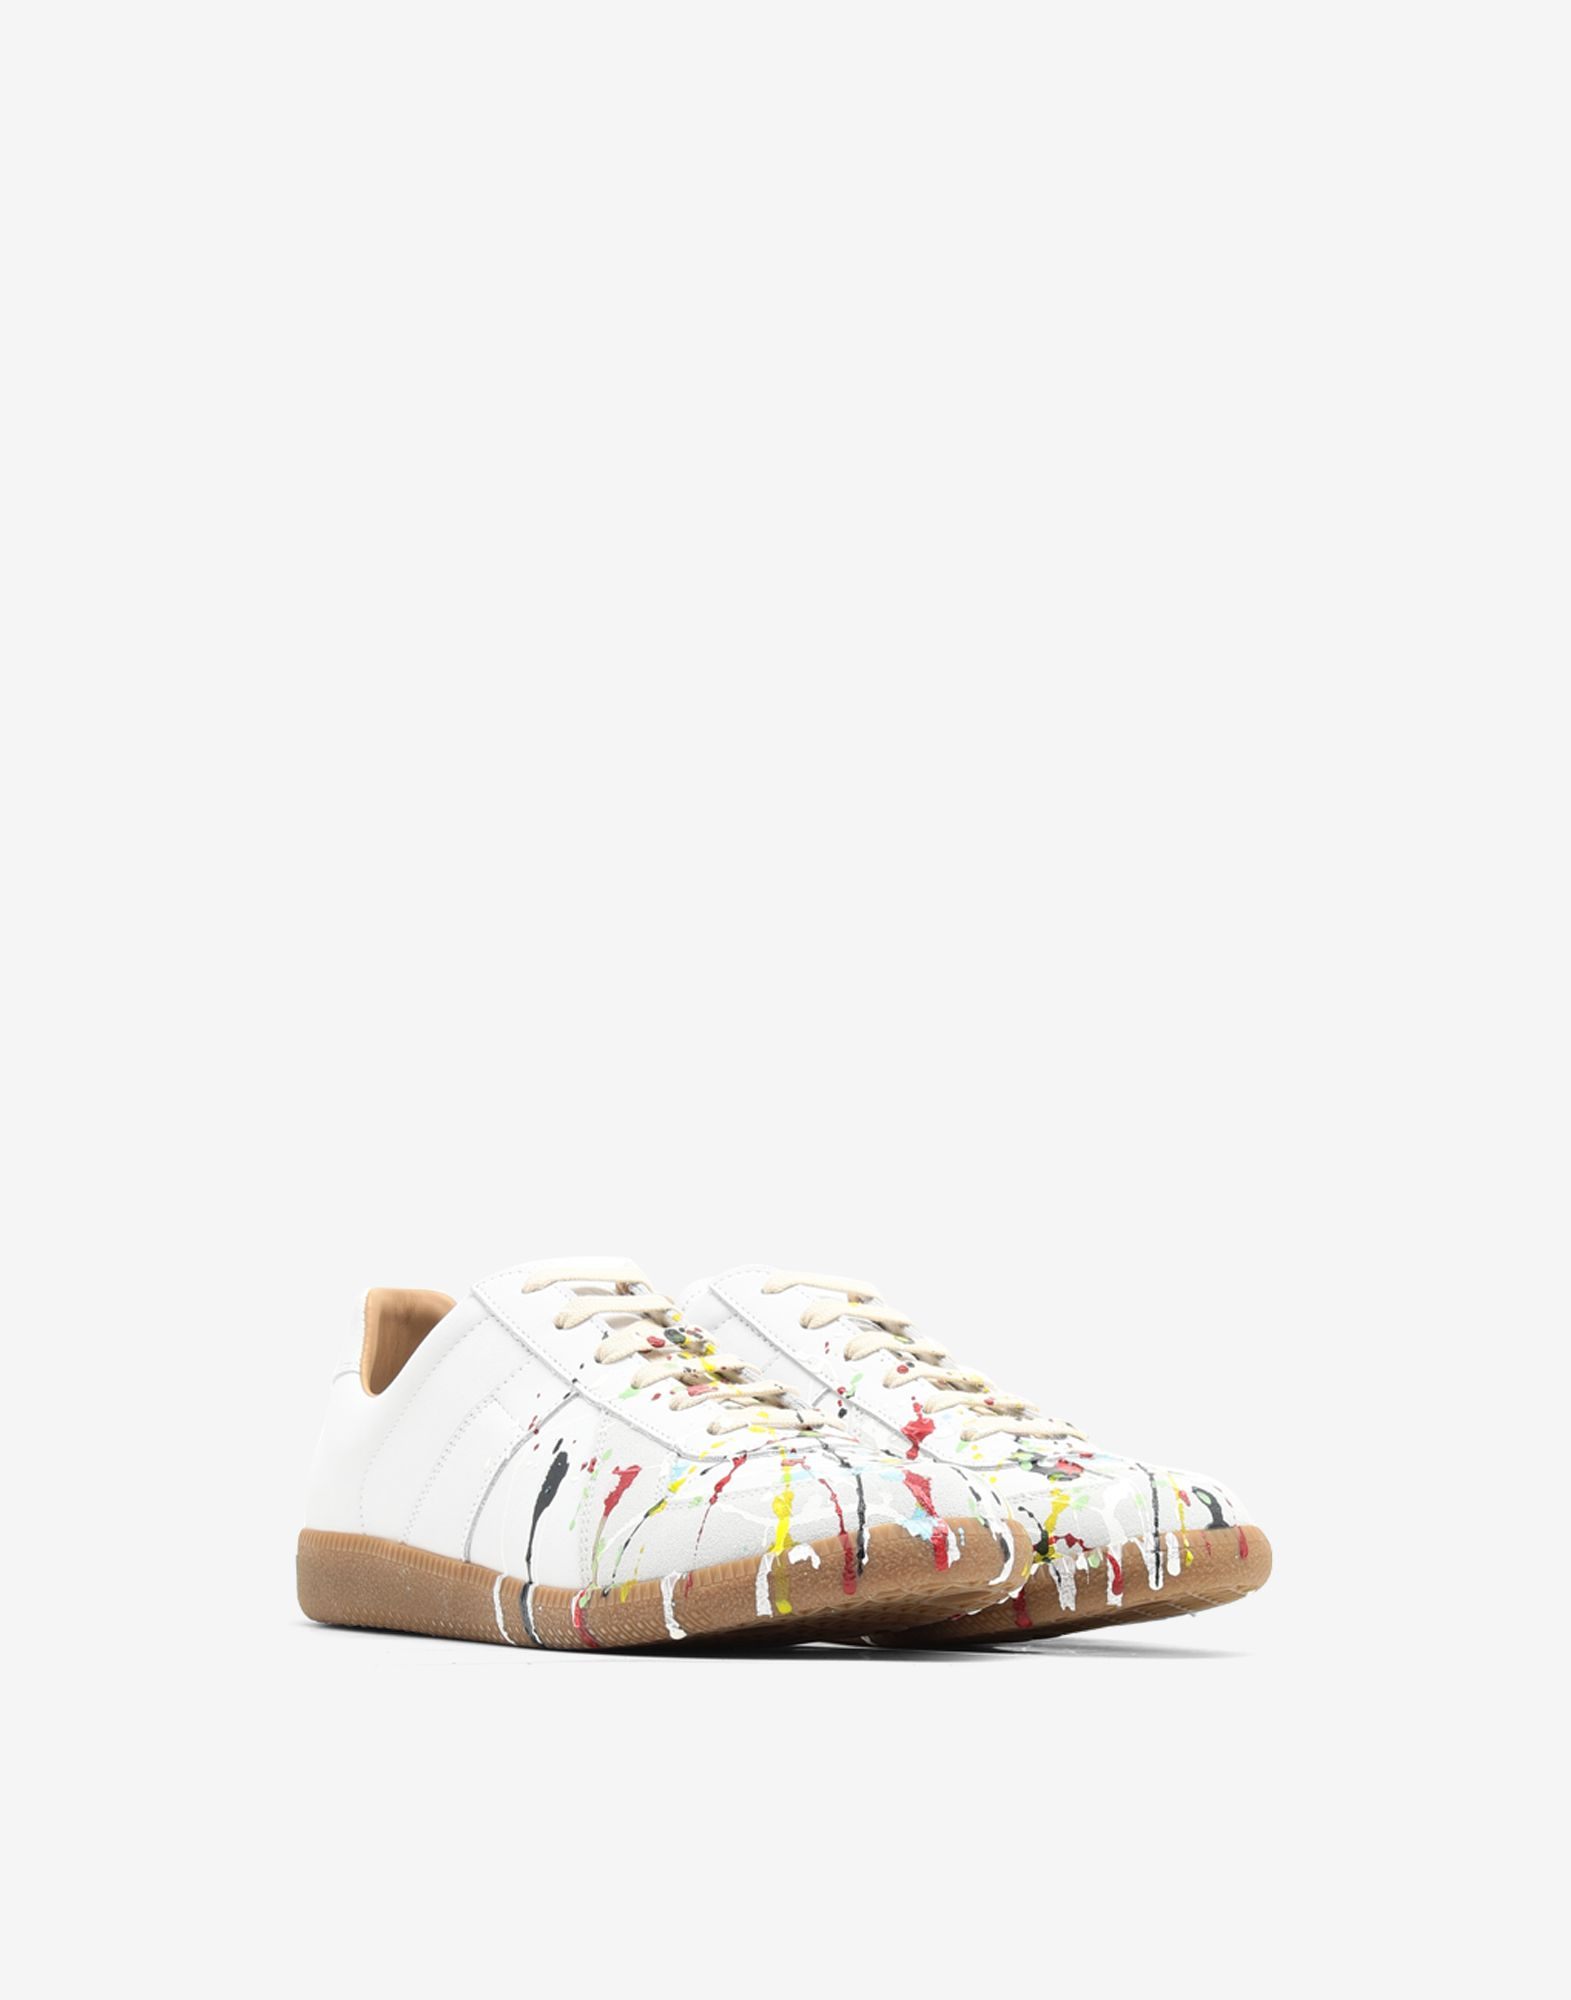 MAISON MARGIELA Replica 'Paint drop' sneakers Sneakers Man r